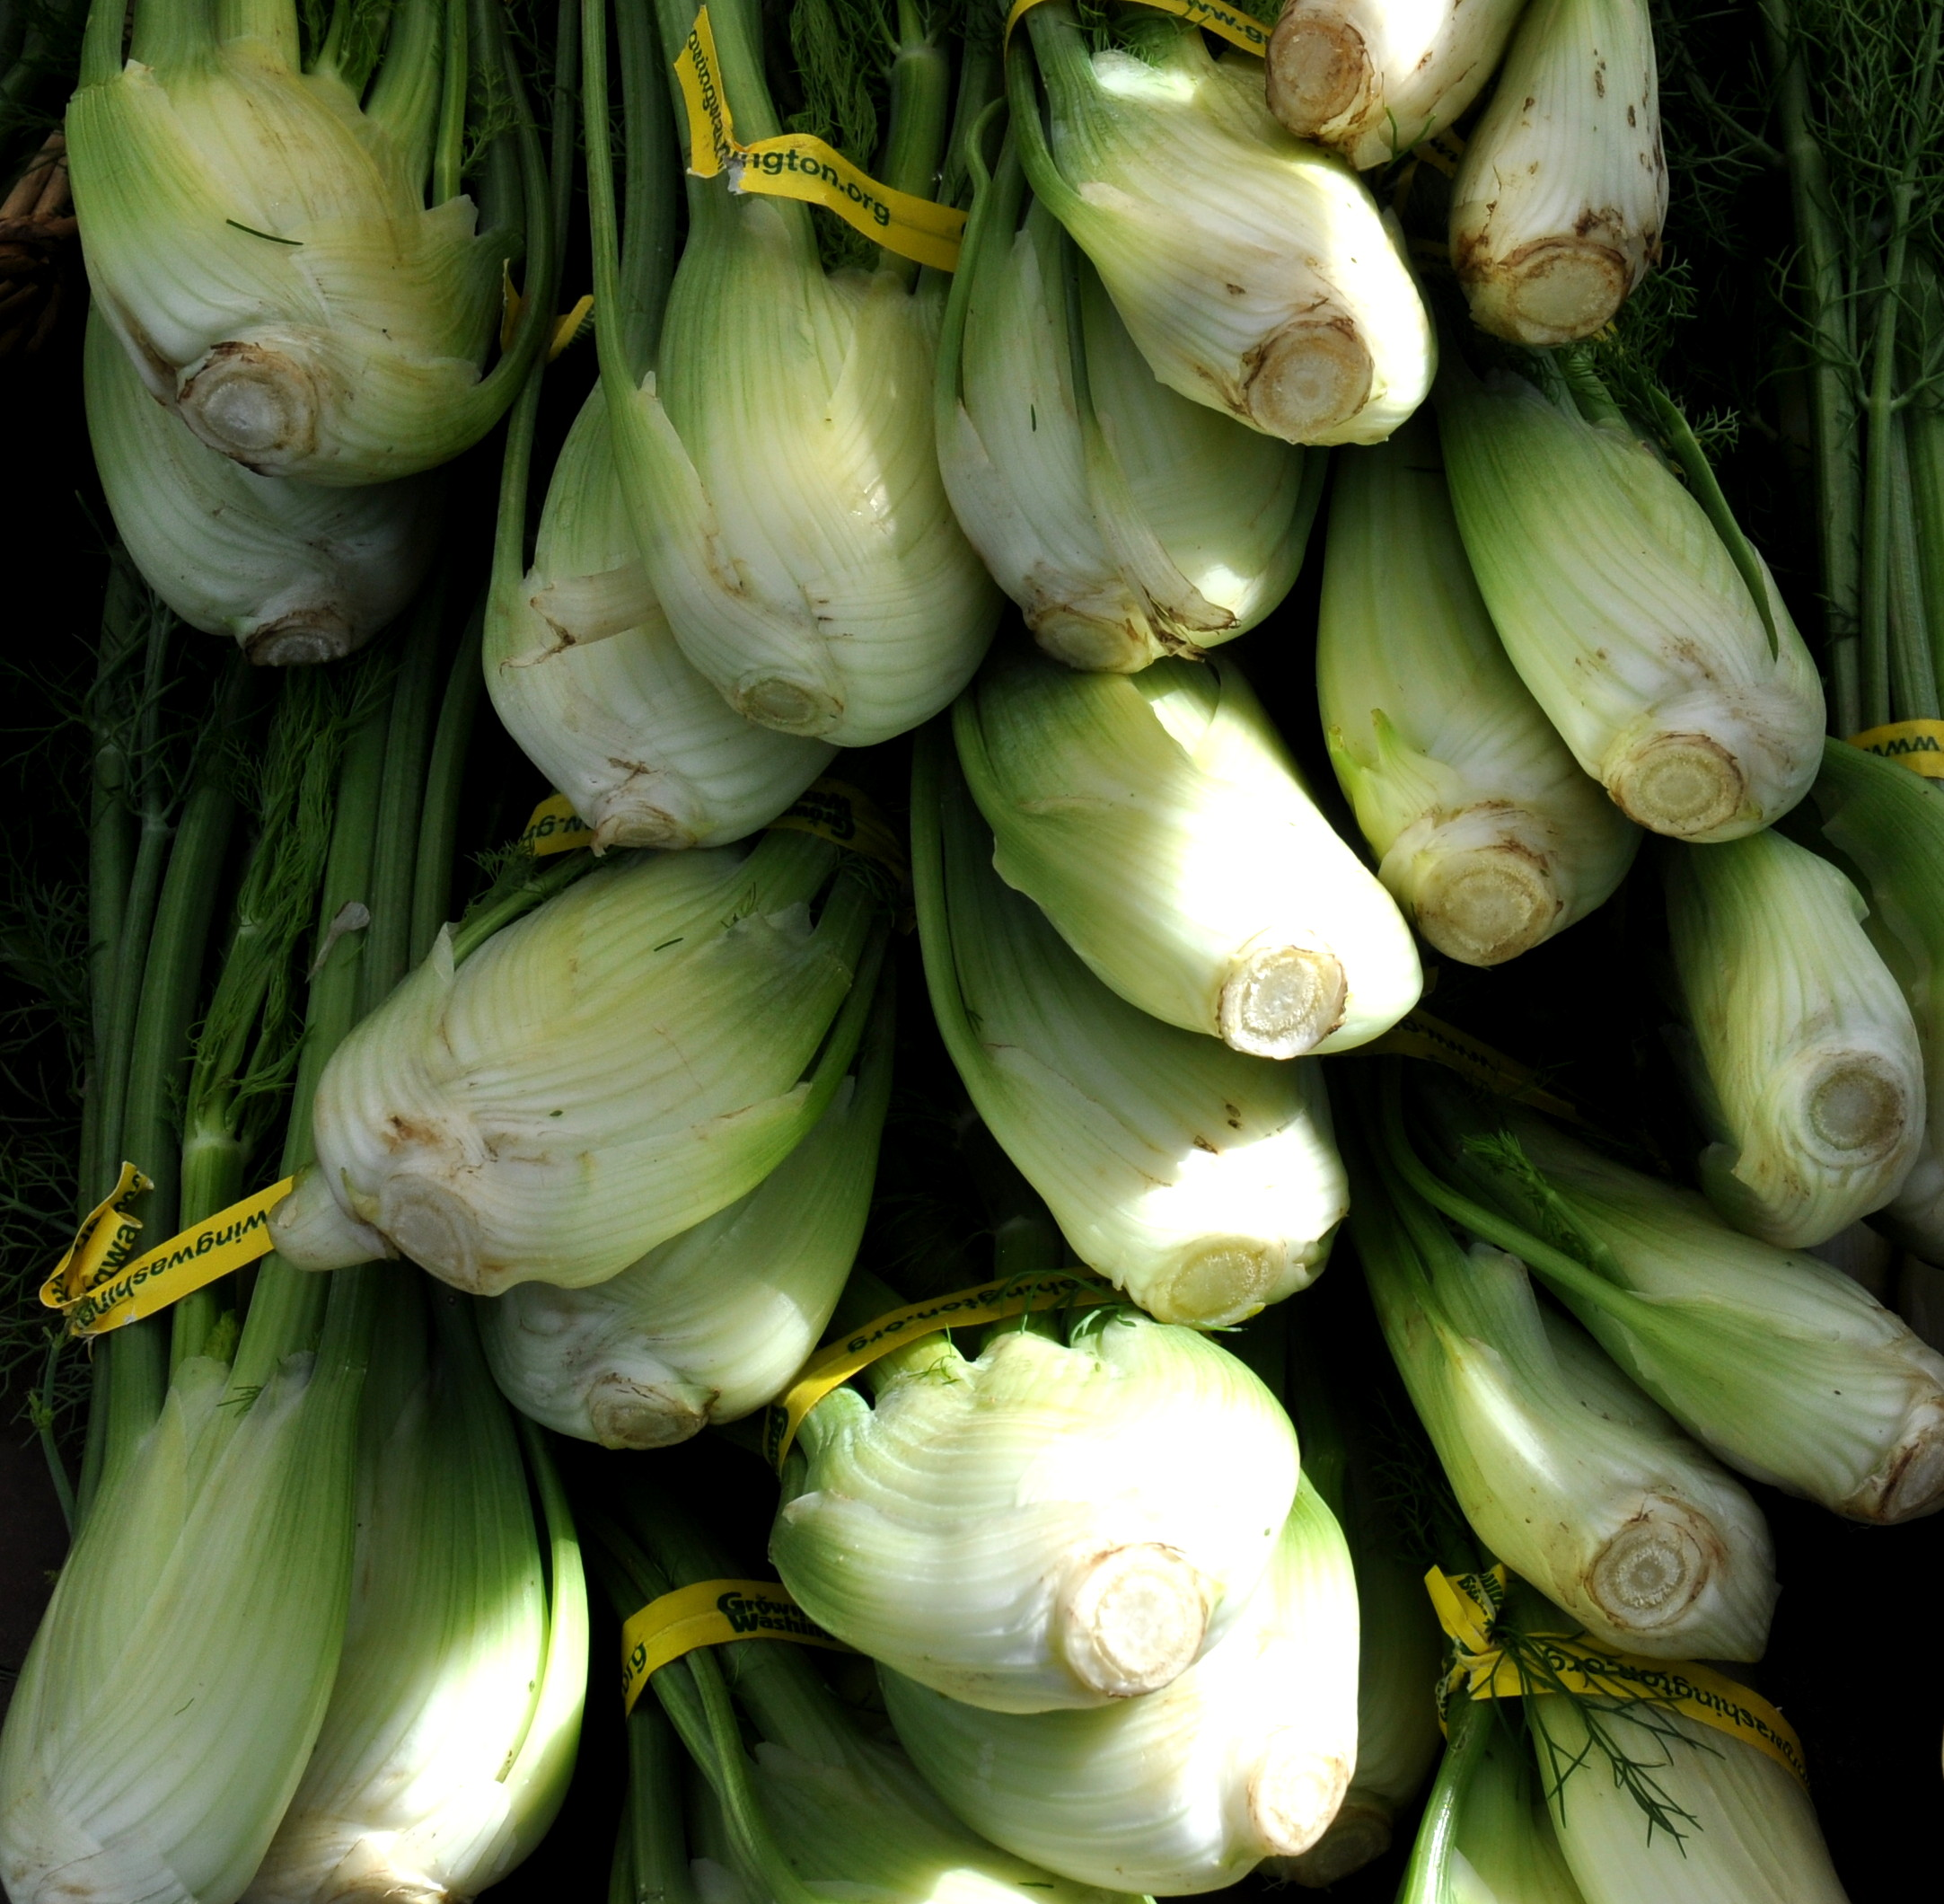 Fennel from Alm Hill Gardens. Photo copyright 2014 by Zachary D. Lyons.